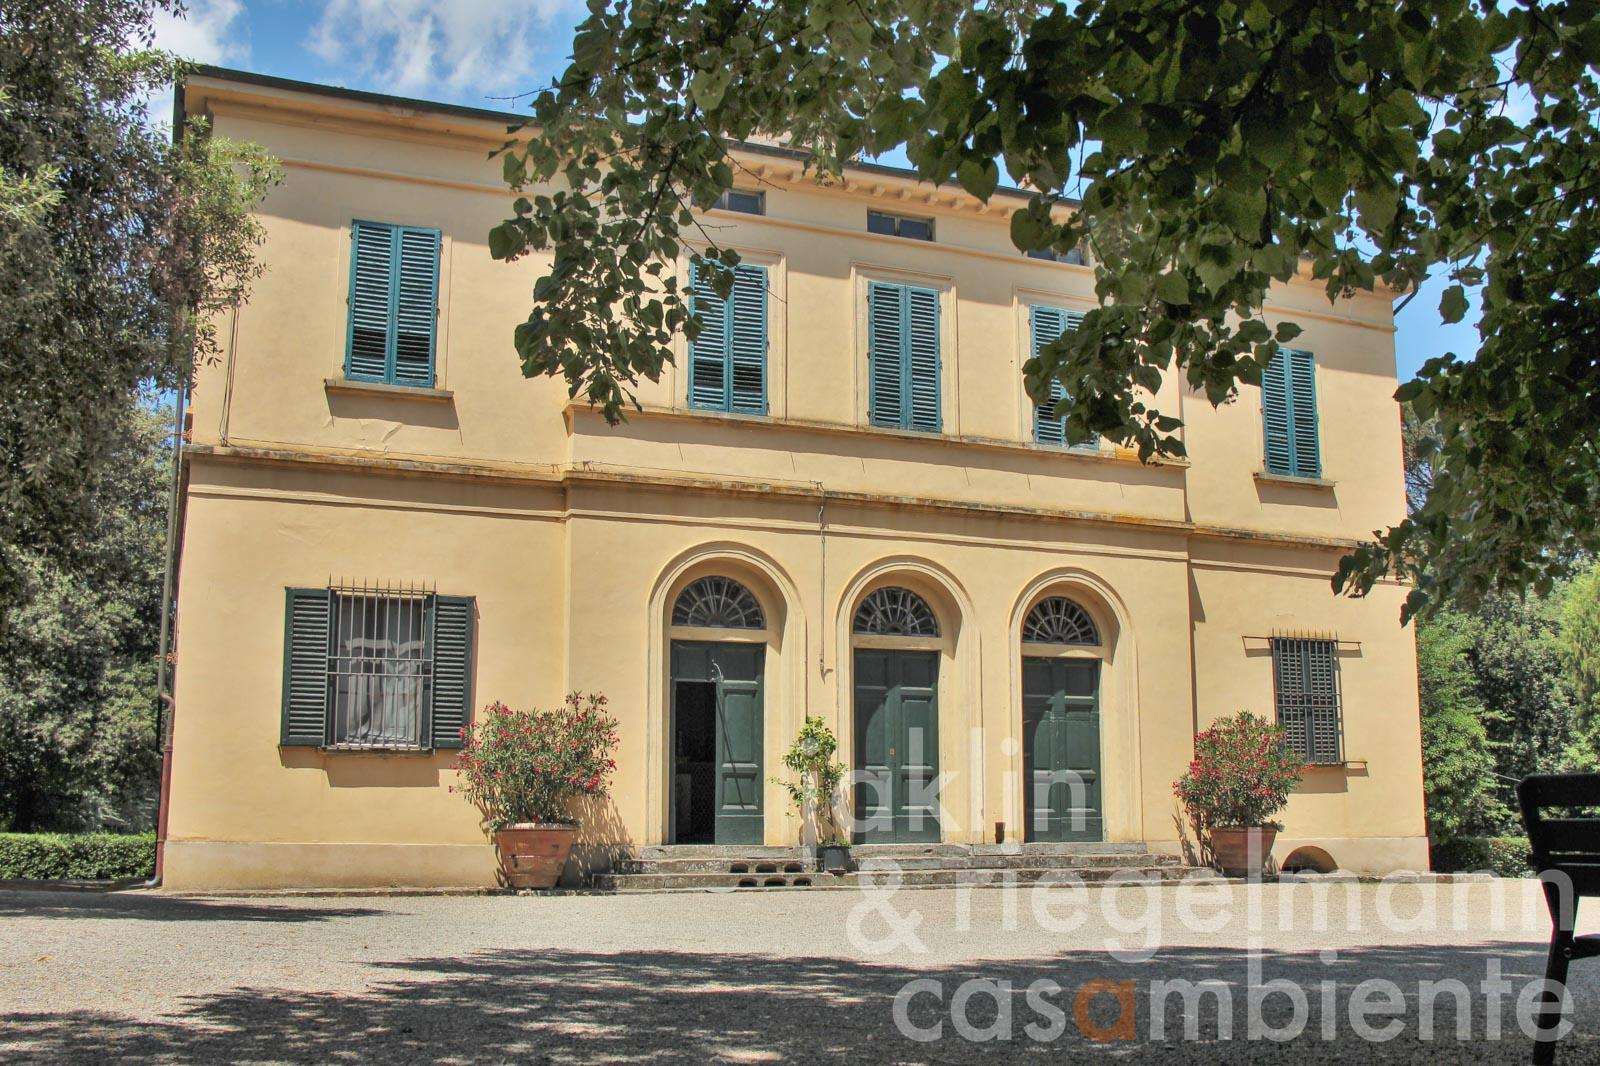 Historic Tuscan Tenuta out of the 17th century for sale with villa and annexe buildings